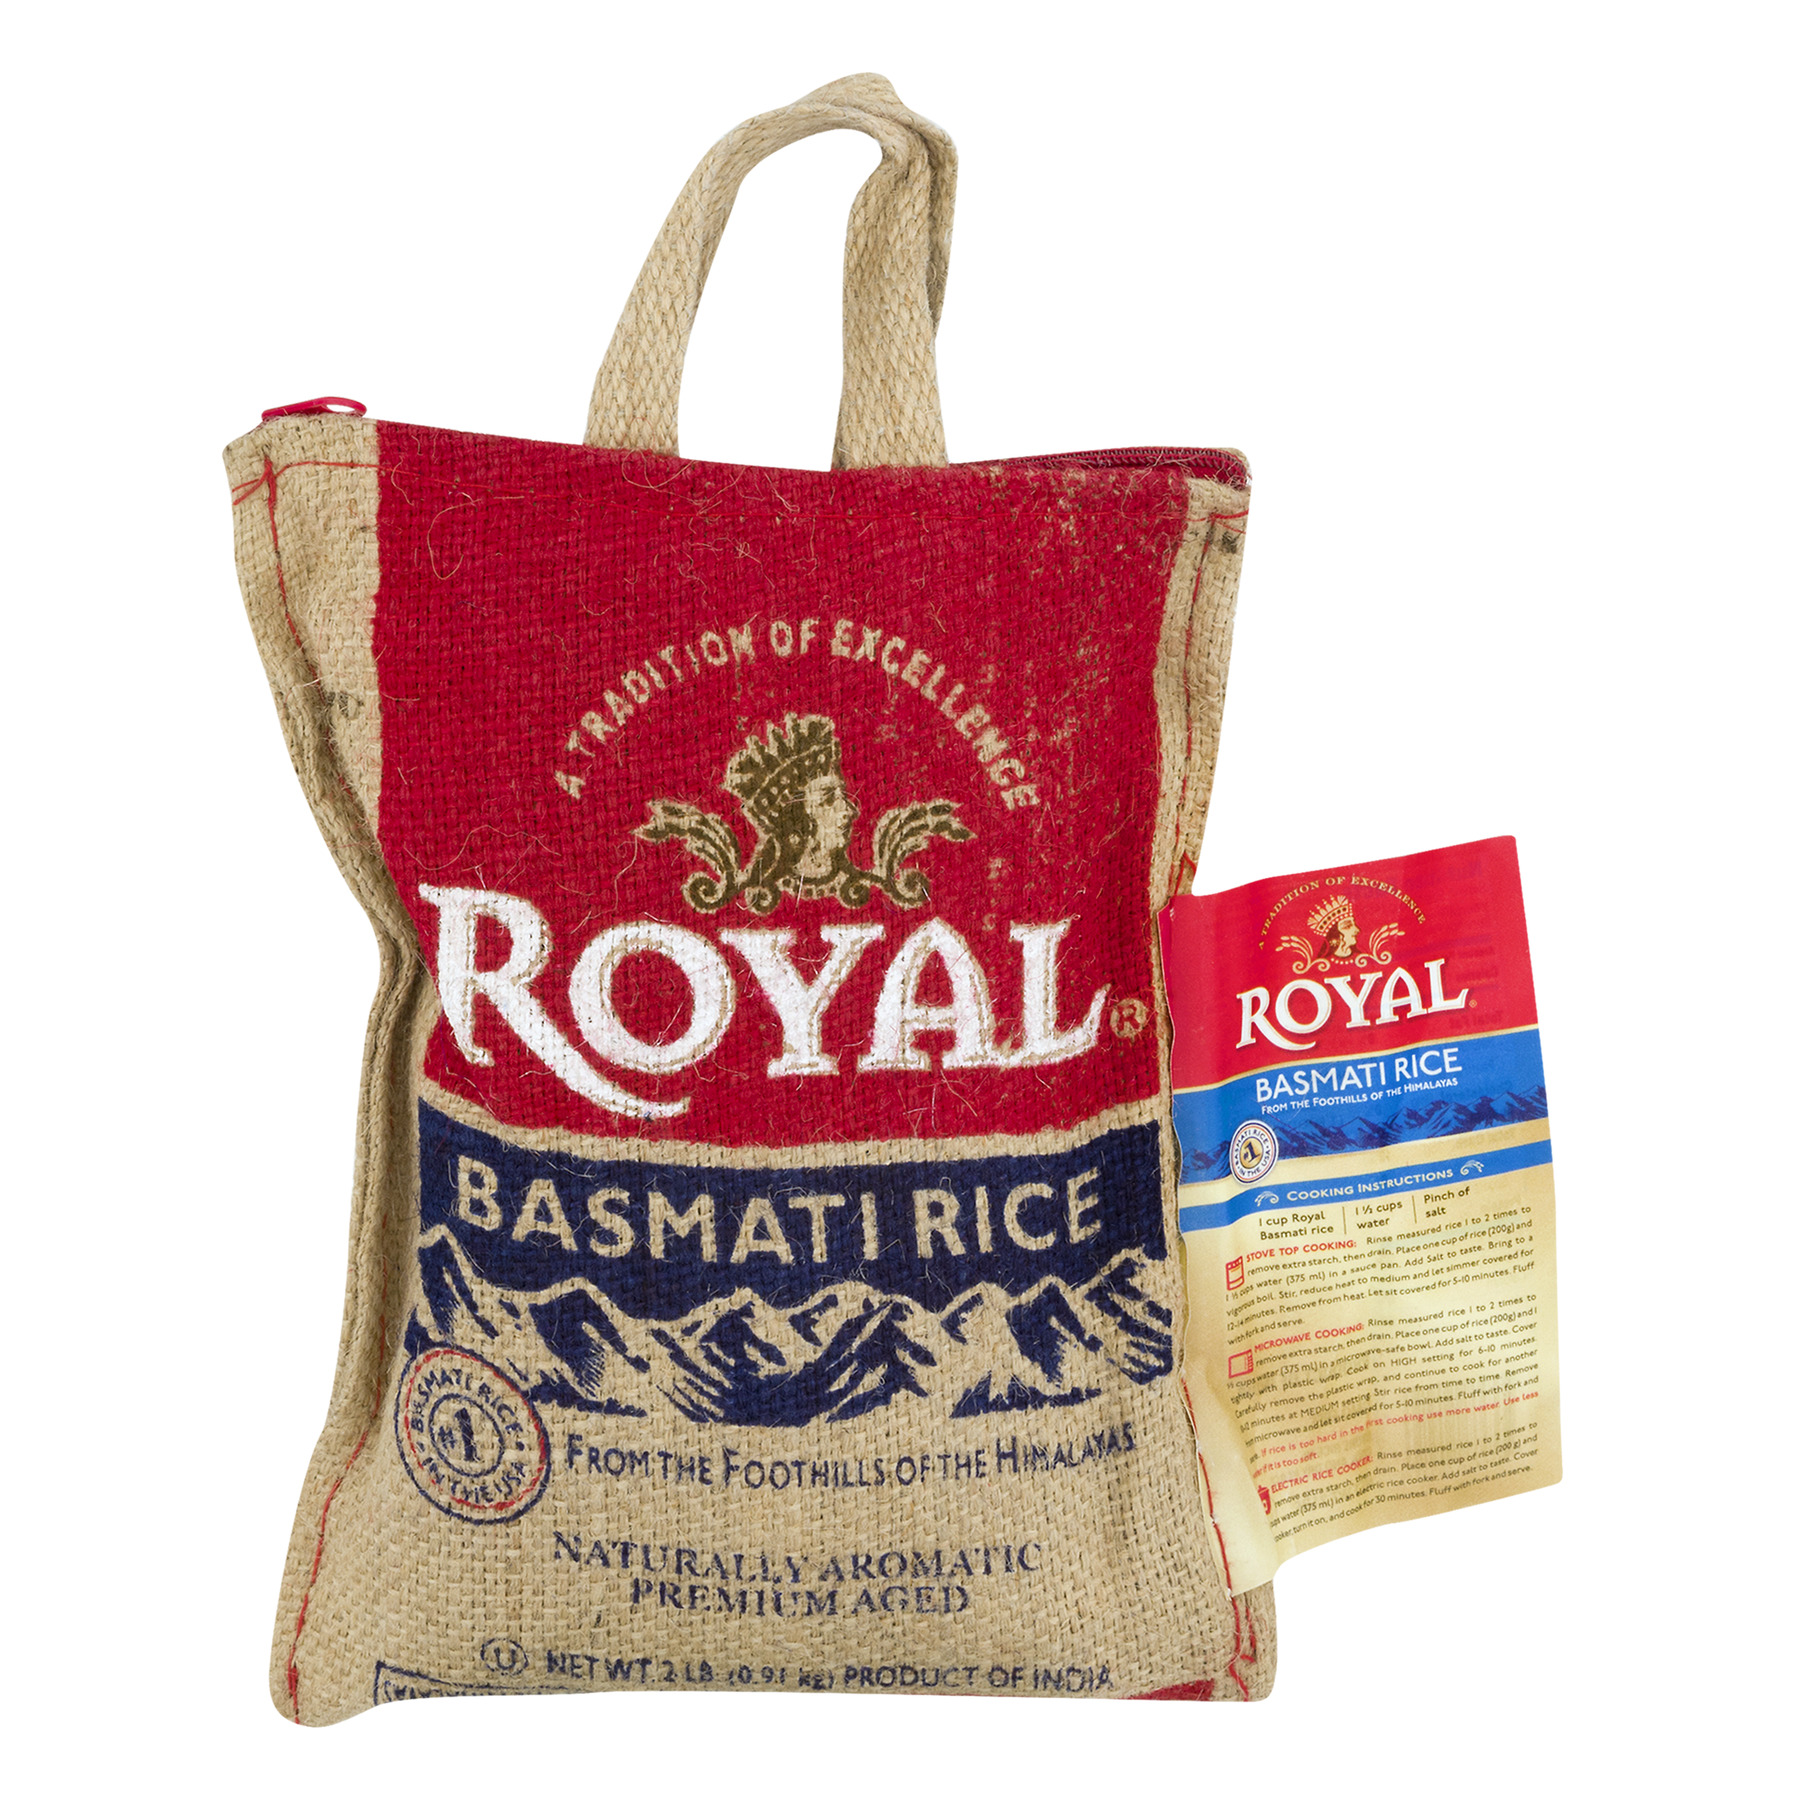 Royal Basmati Rice, 2 lbs